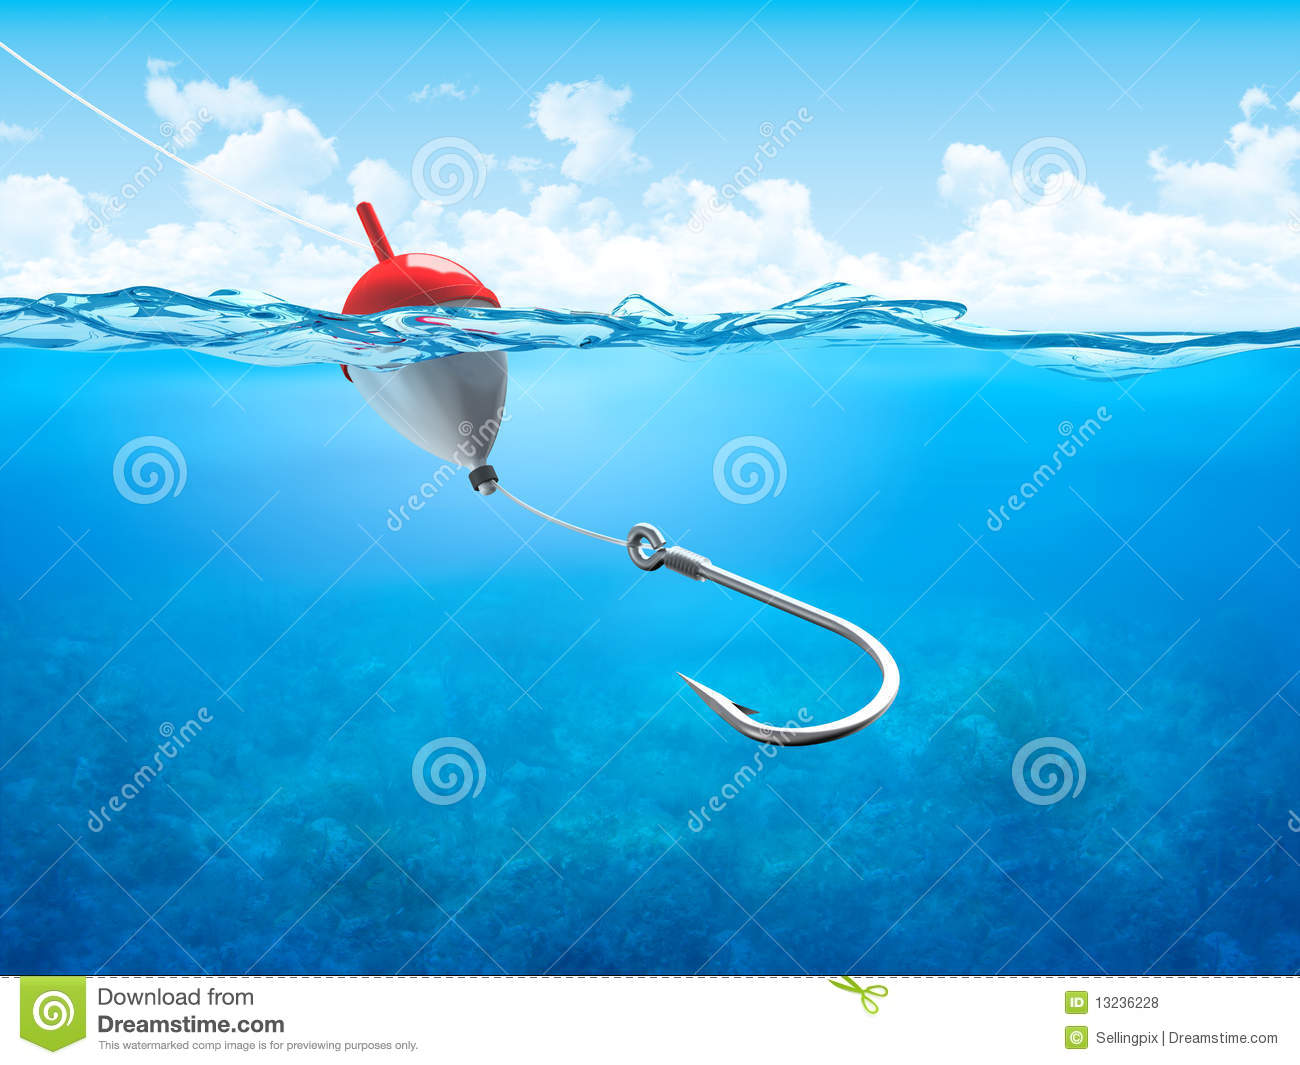 ... Hook Underwater Vertical Royalty Free Stock Photos - Image: 13236228: www.dreamstime.com/royalty-free-stock-photos-float-fishing-line...